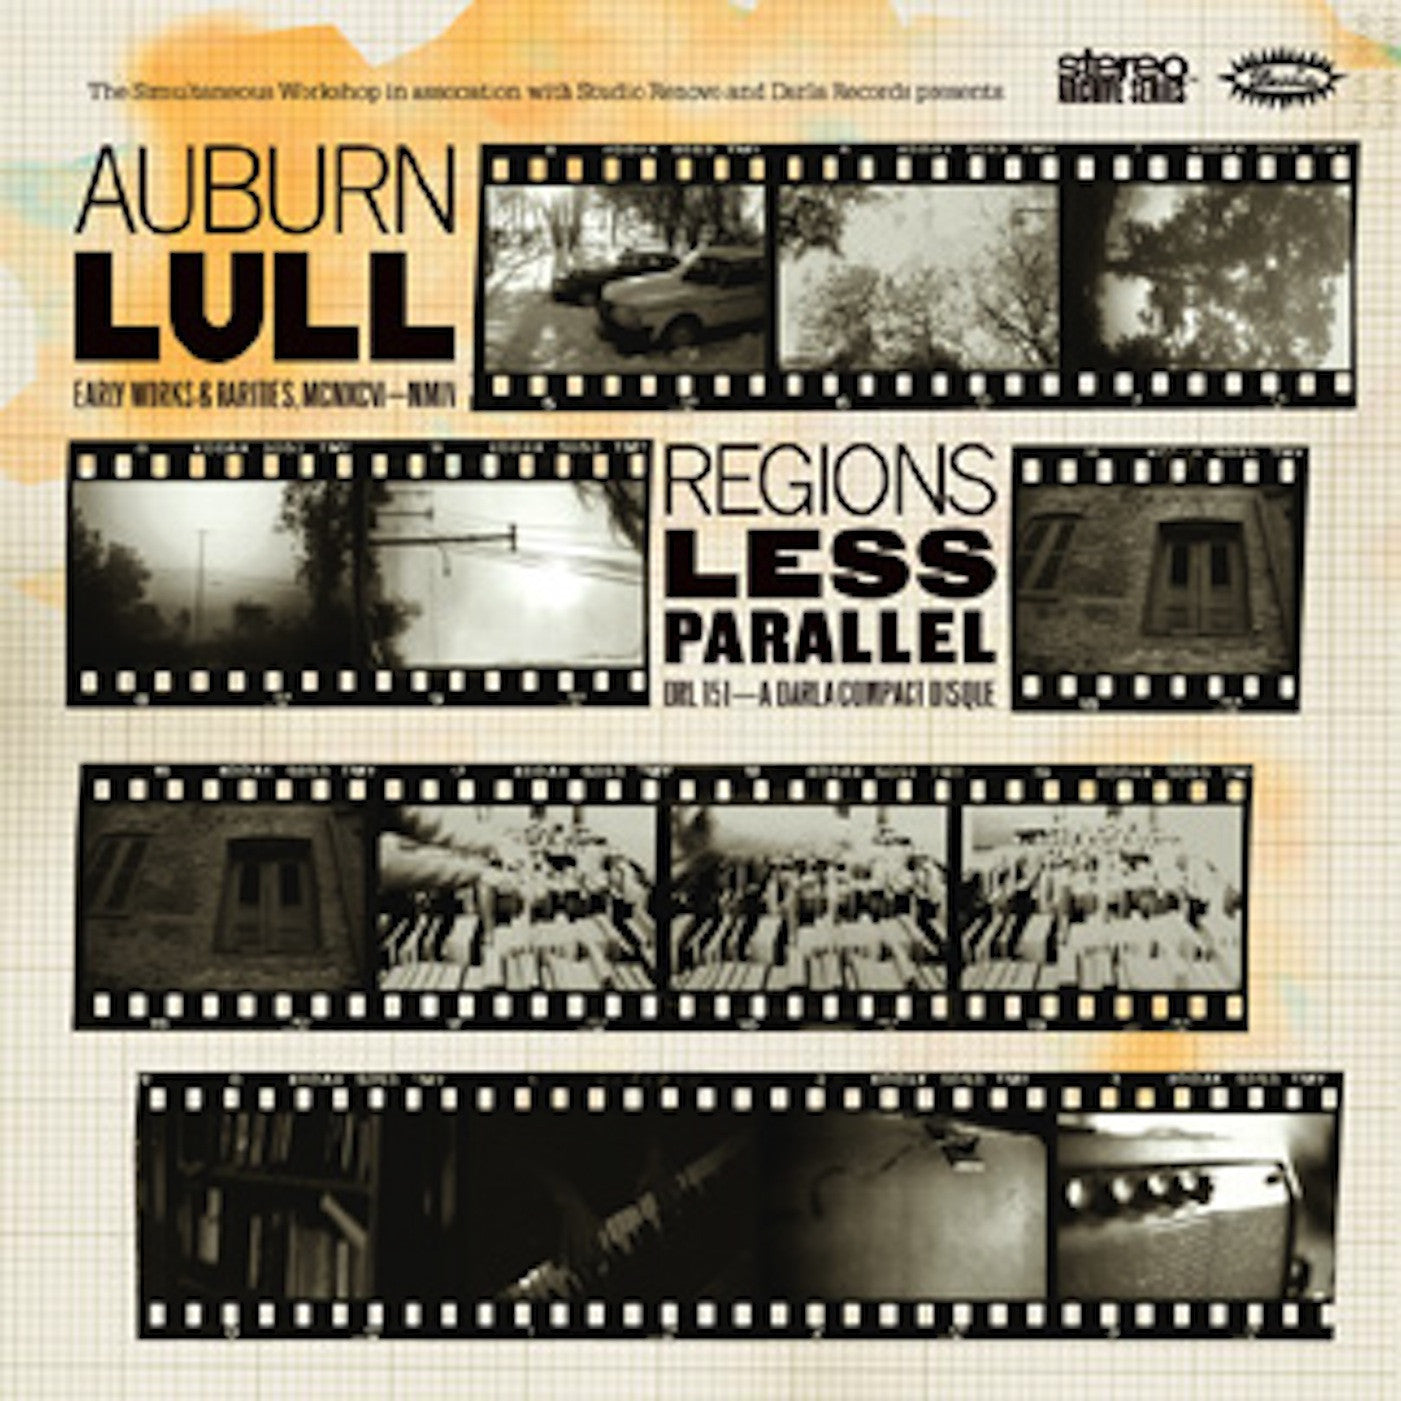 Auburn Lull - Regions Less Parallel: Early Works and Rarities 1996-2004